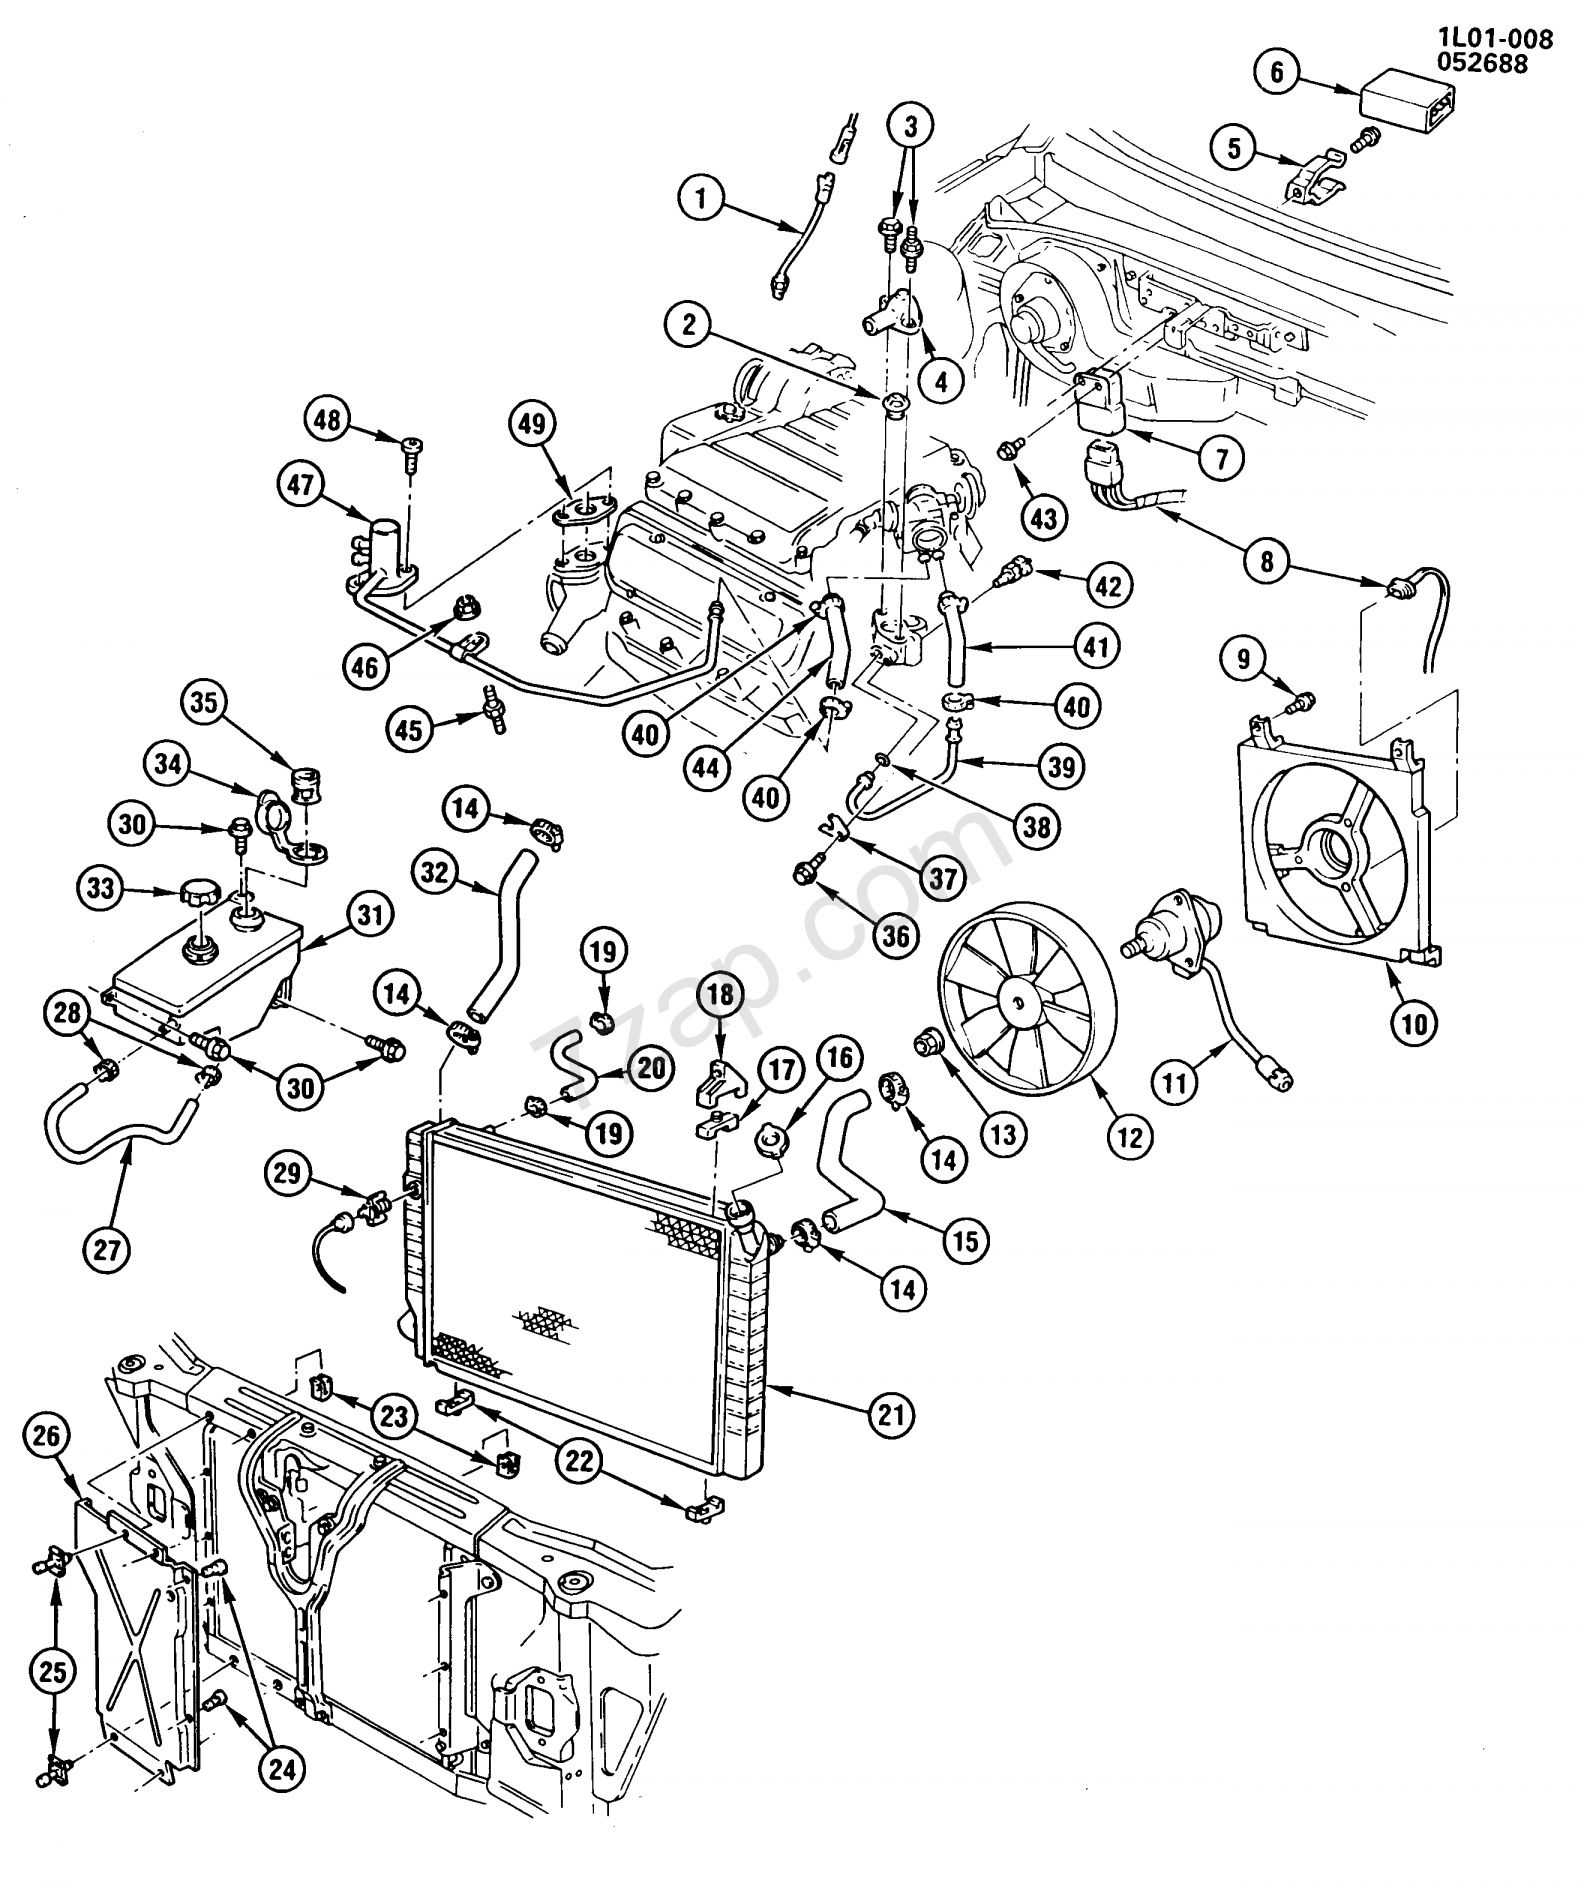 Chevy 305 Engine Wiring Diagram And Chevy L V Engine Diagram New Wiring Diagrams V Engine Diagram Chevy